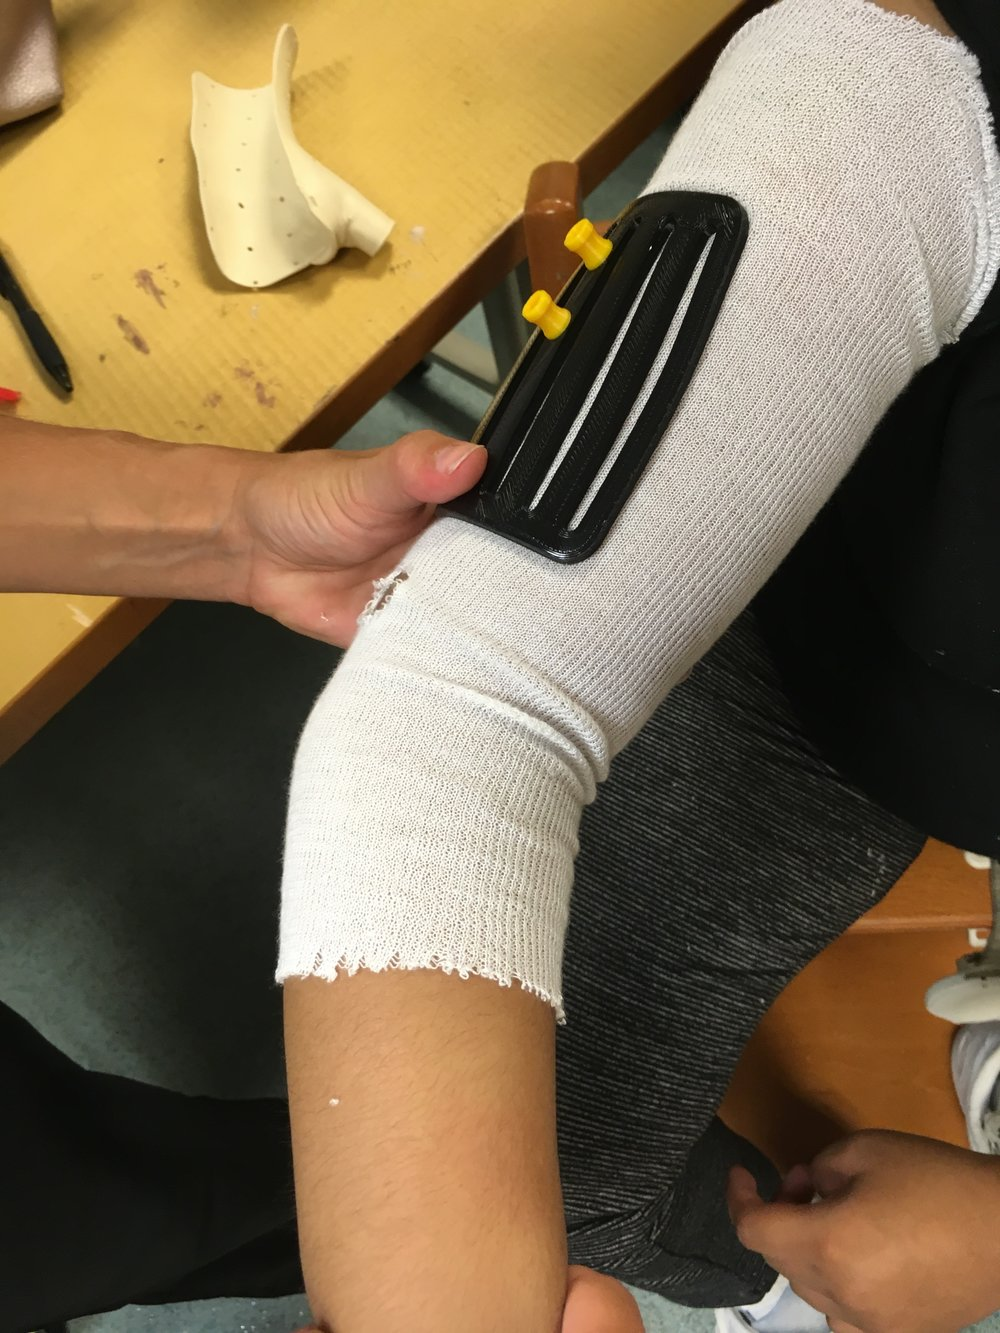 Creating a new device for the upper extremity in patients with cerebral palsy... in process... - Dr. Chu is creating an innovative device for neuromuscular disorders in cerebral palsy patients!